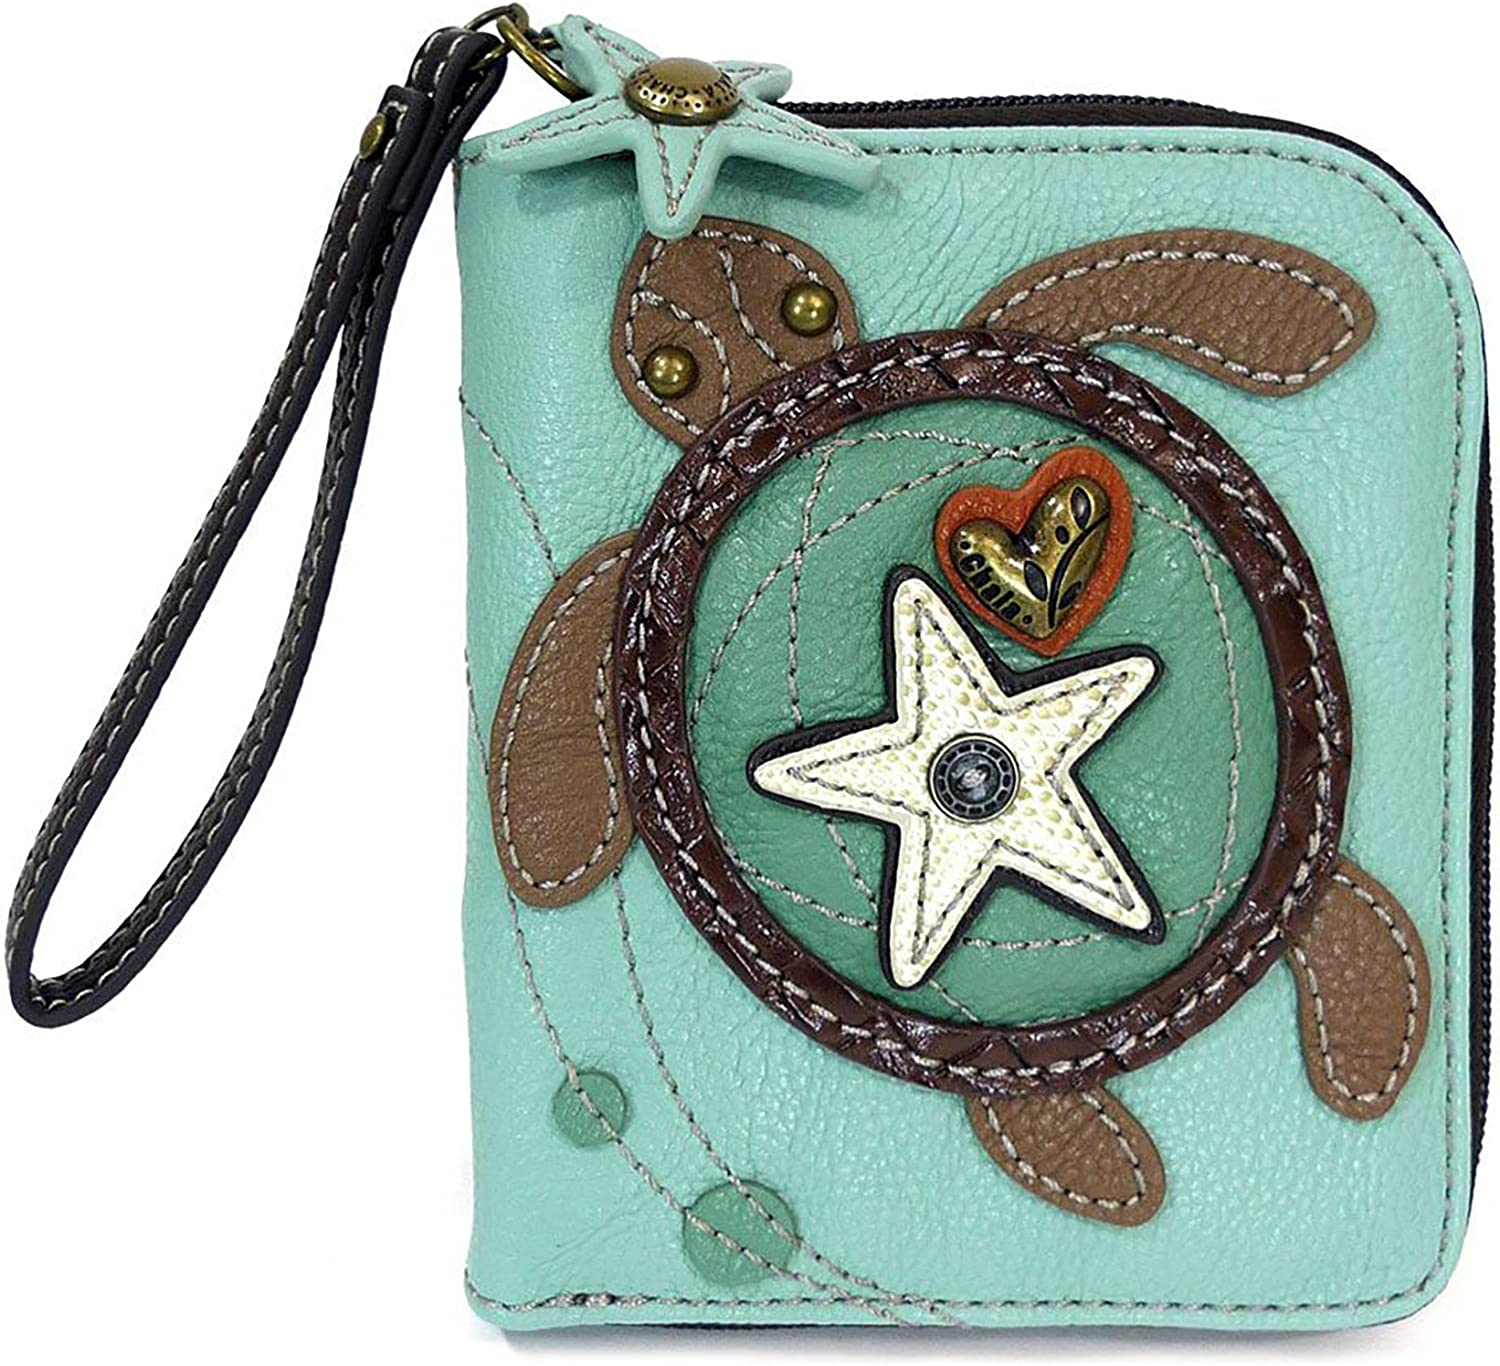 CHALA Zip Around Ranking TOP13 Wallet Wristlet 8 Card Slots Credit P Our shop OFFers the best service Sturdy